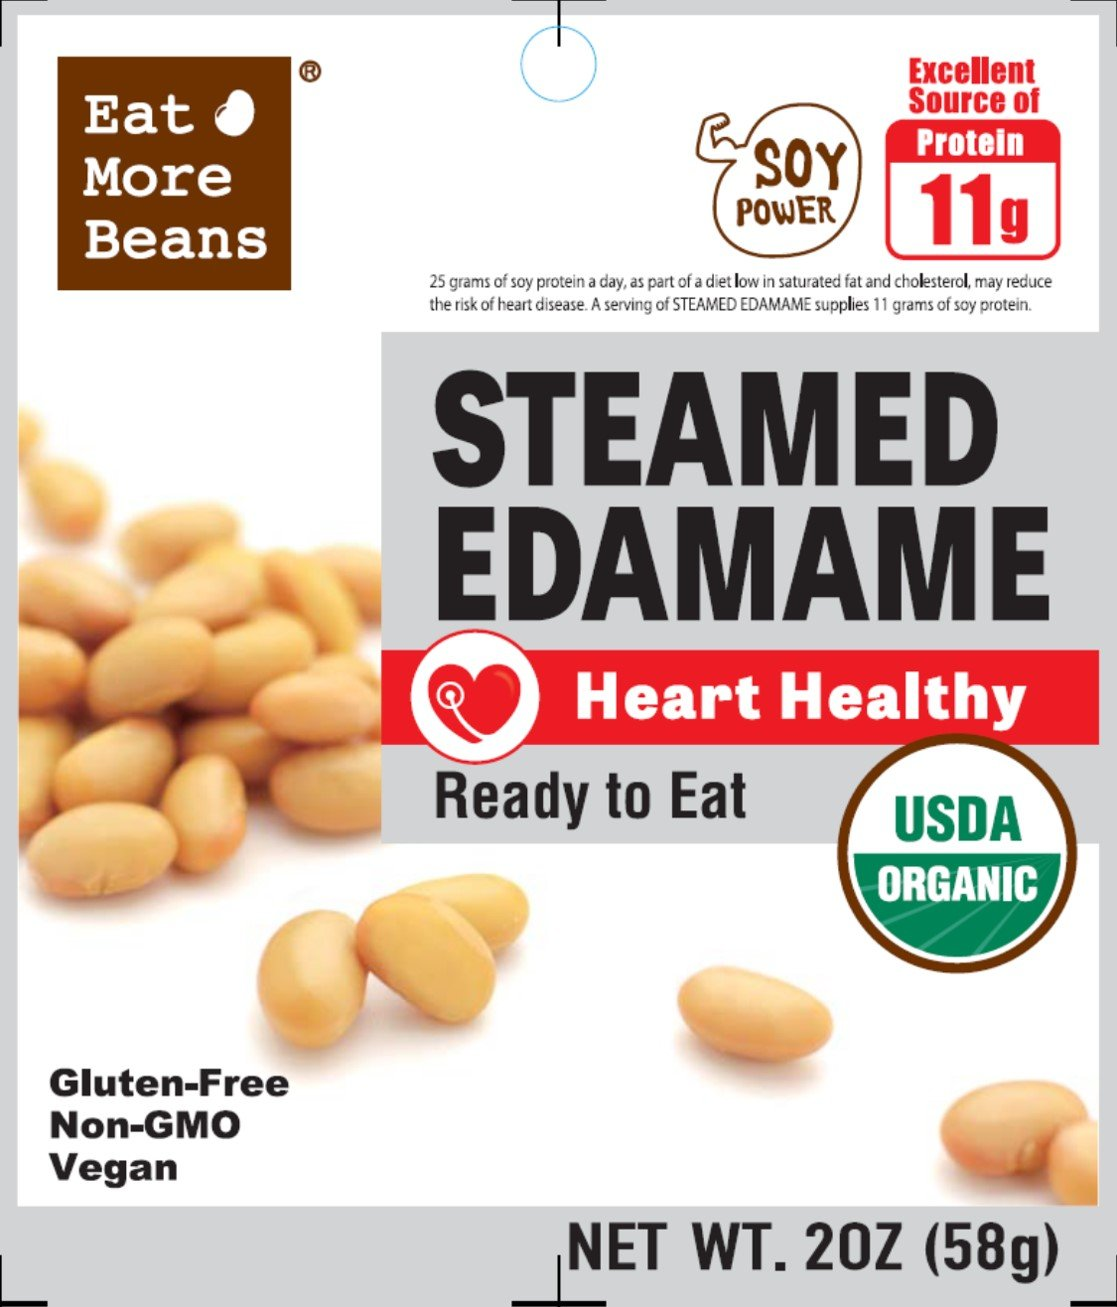 Steamed Edamame! A heart healthy Product! Ready to Eat at anytime!